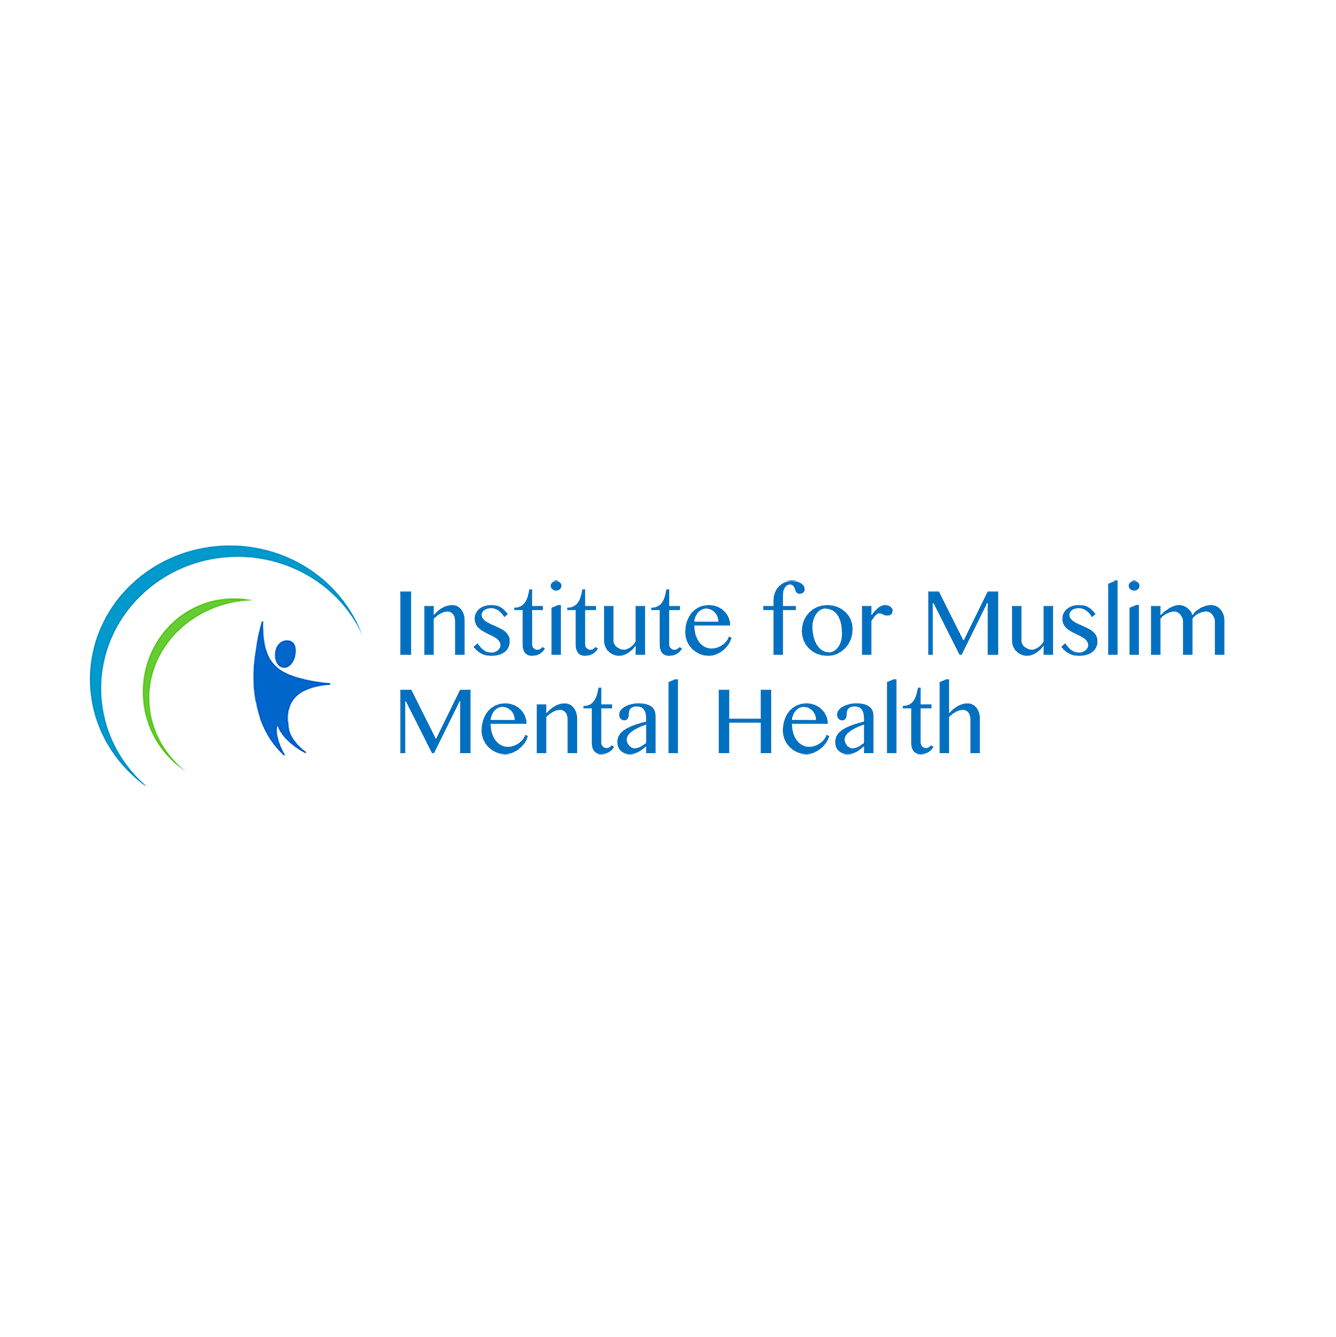 Institute for Muslim Mental Health logo